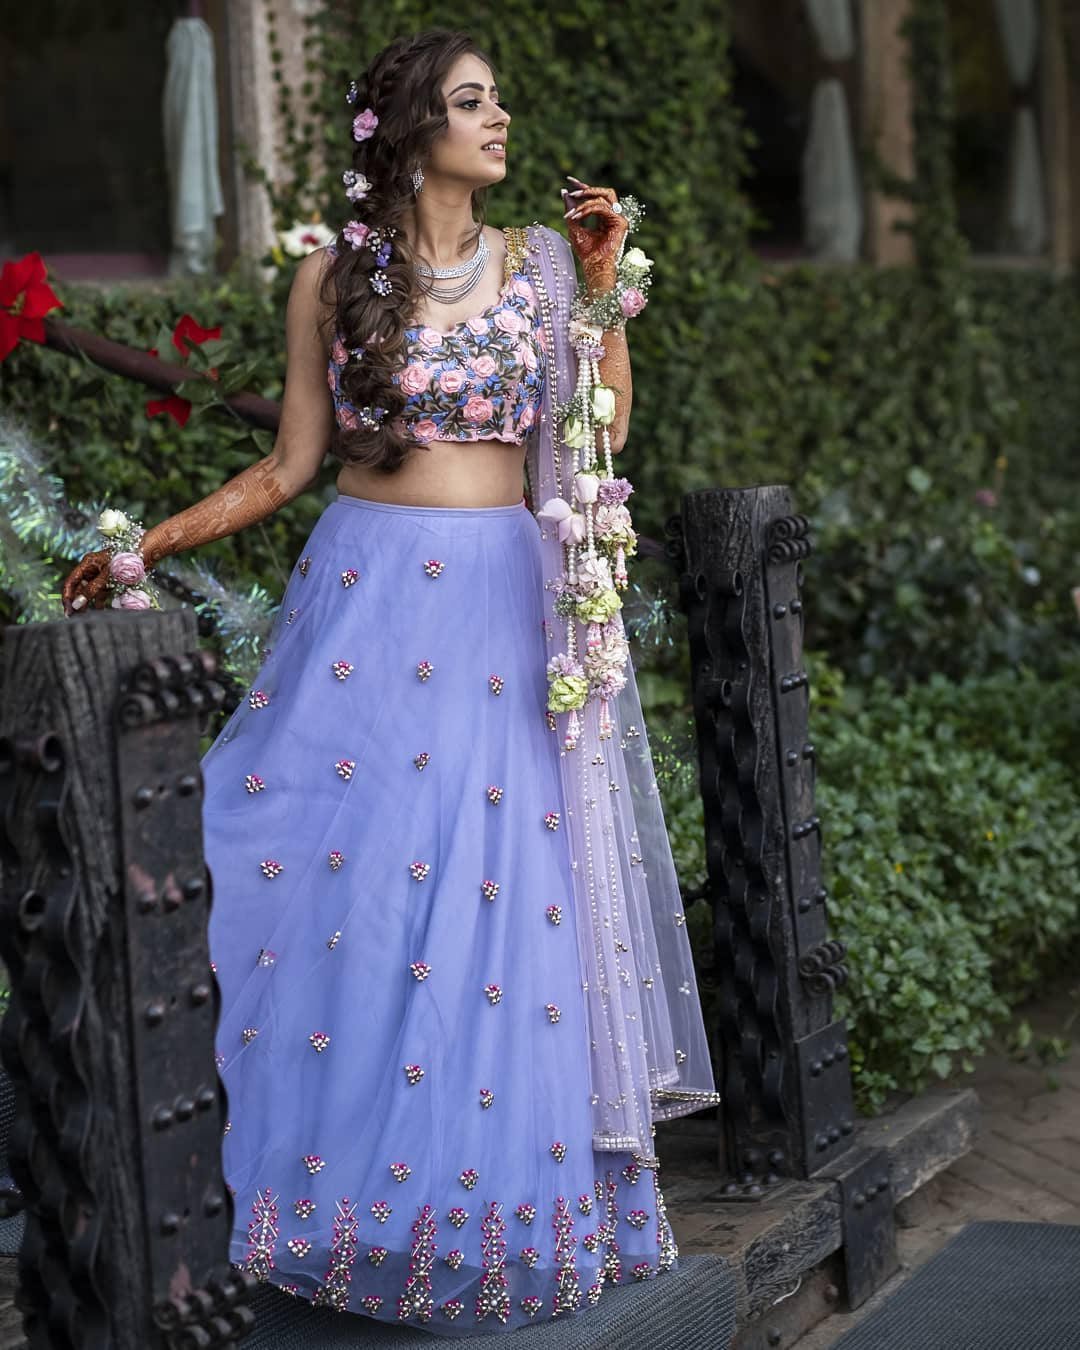 Charming lavender: Light Lehenga Designs for Bride & Bridesmaid